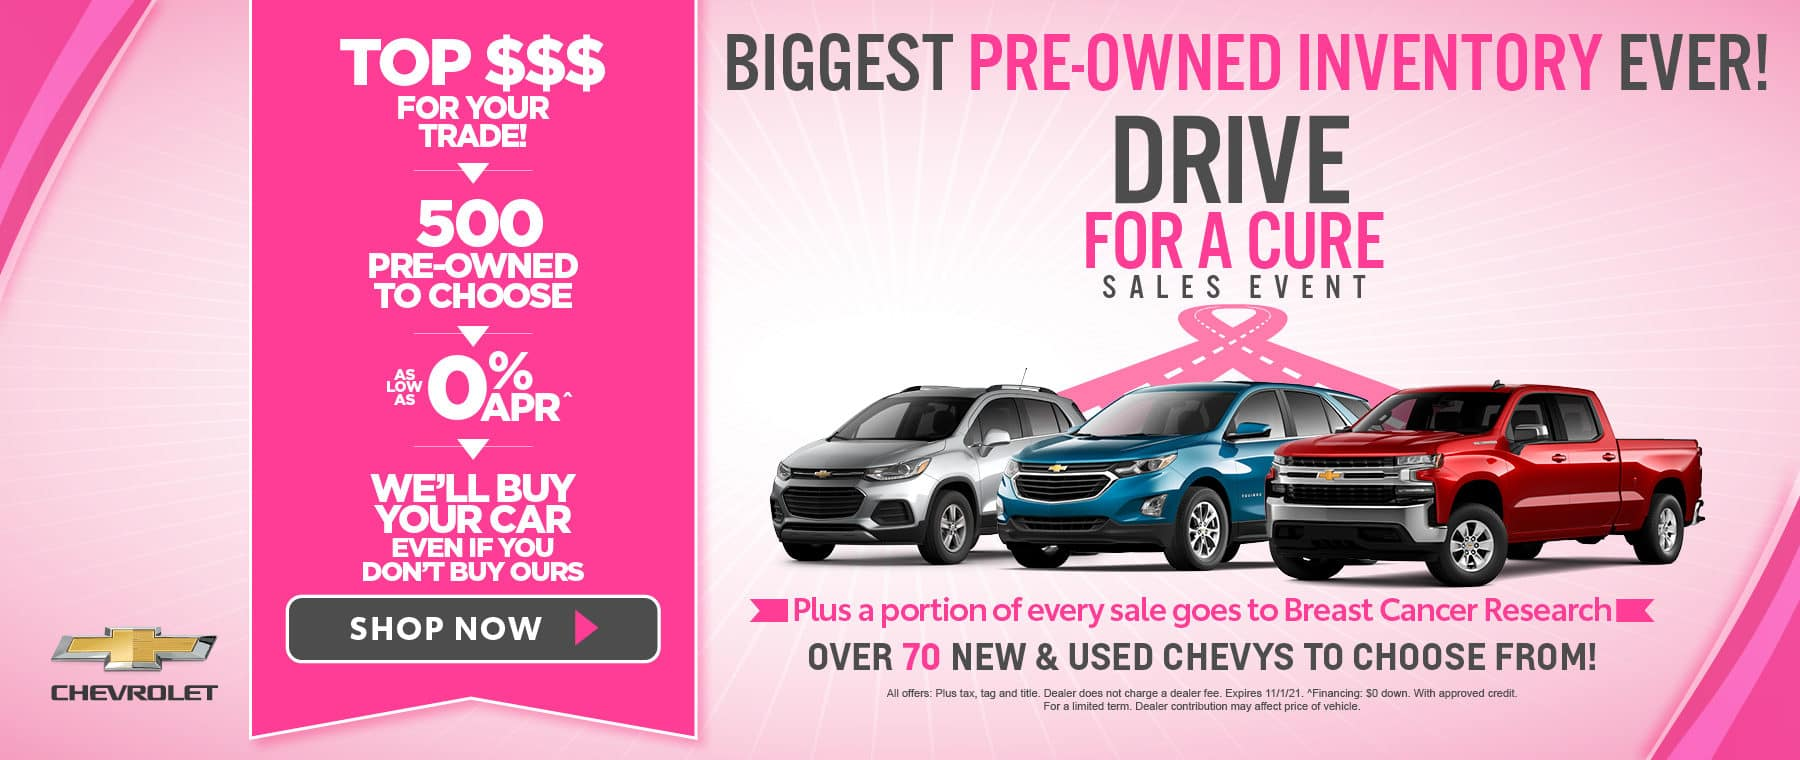 Biggest Pre-Owned Inventory